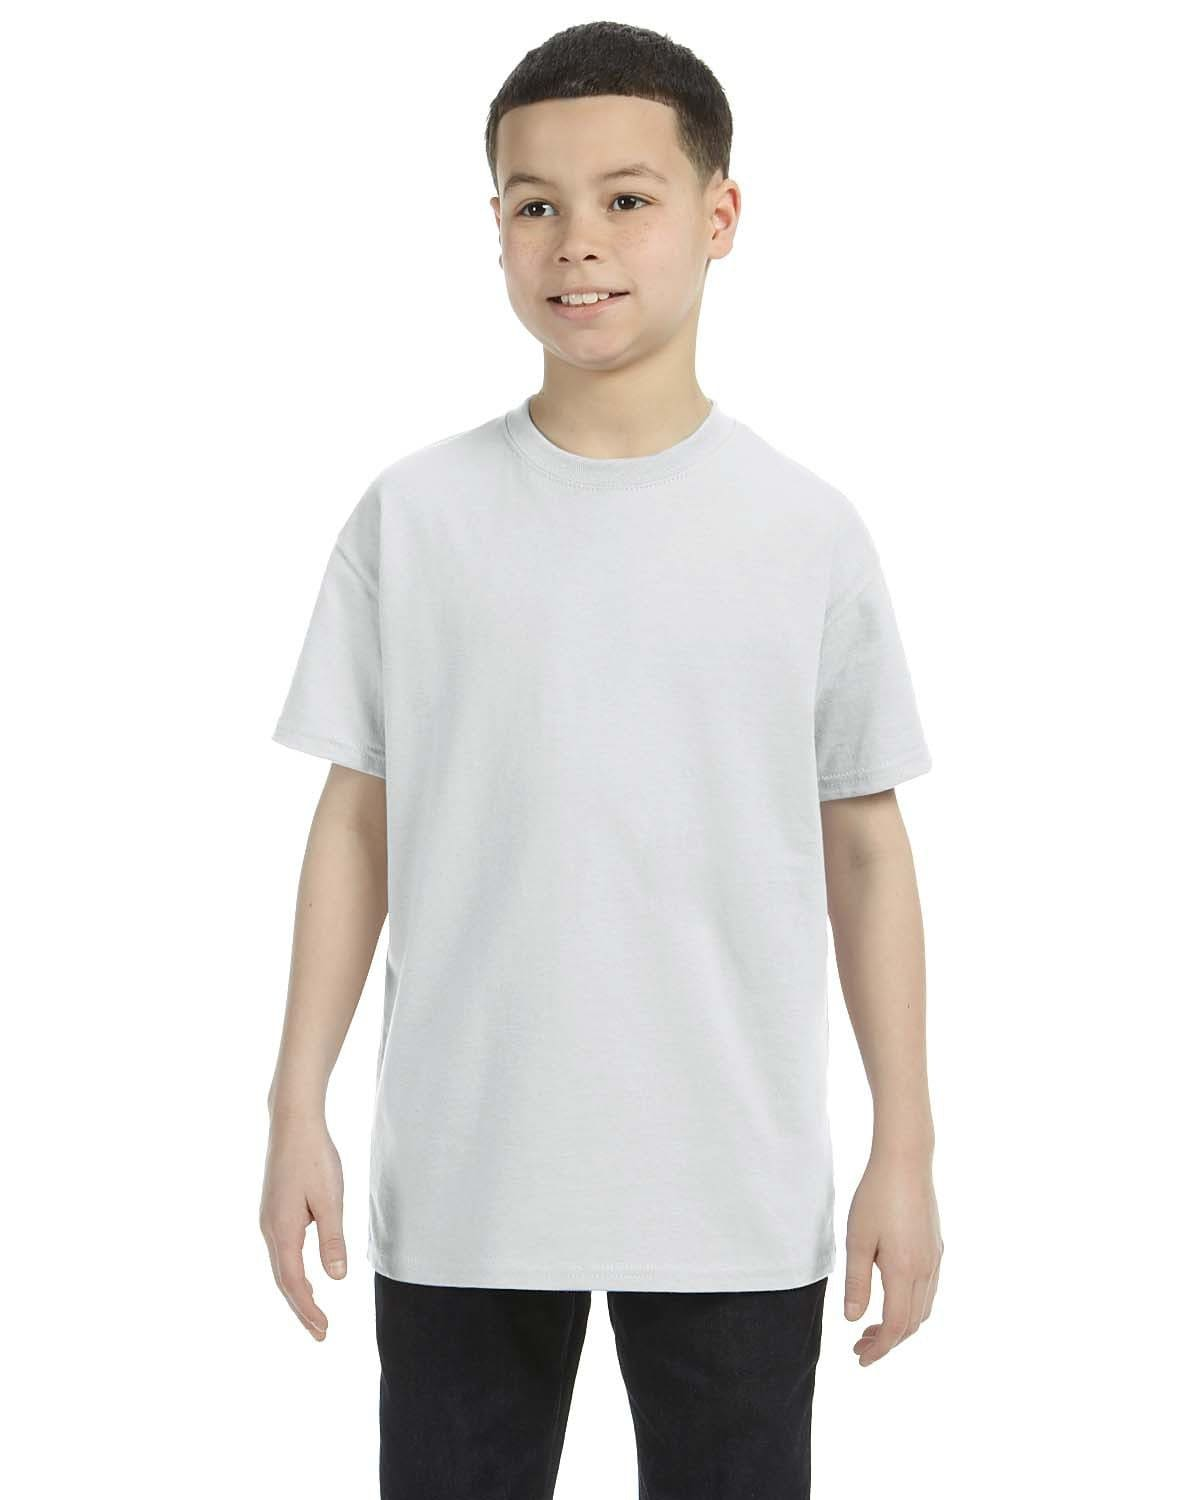 g500b-youth-heavy-cotton-5-3-oz-t-shirt-xsmall-XSmall-ASH GREY-Oasispromos